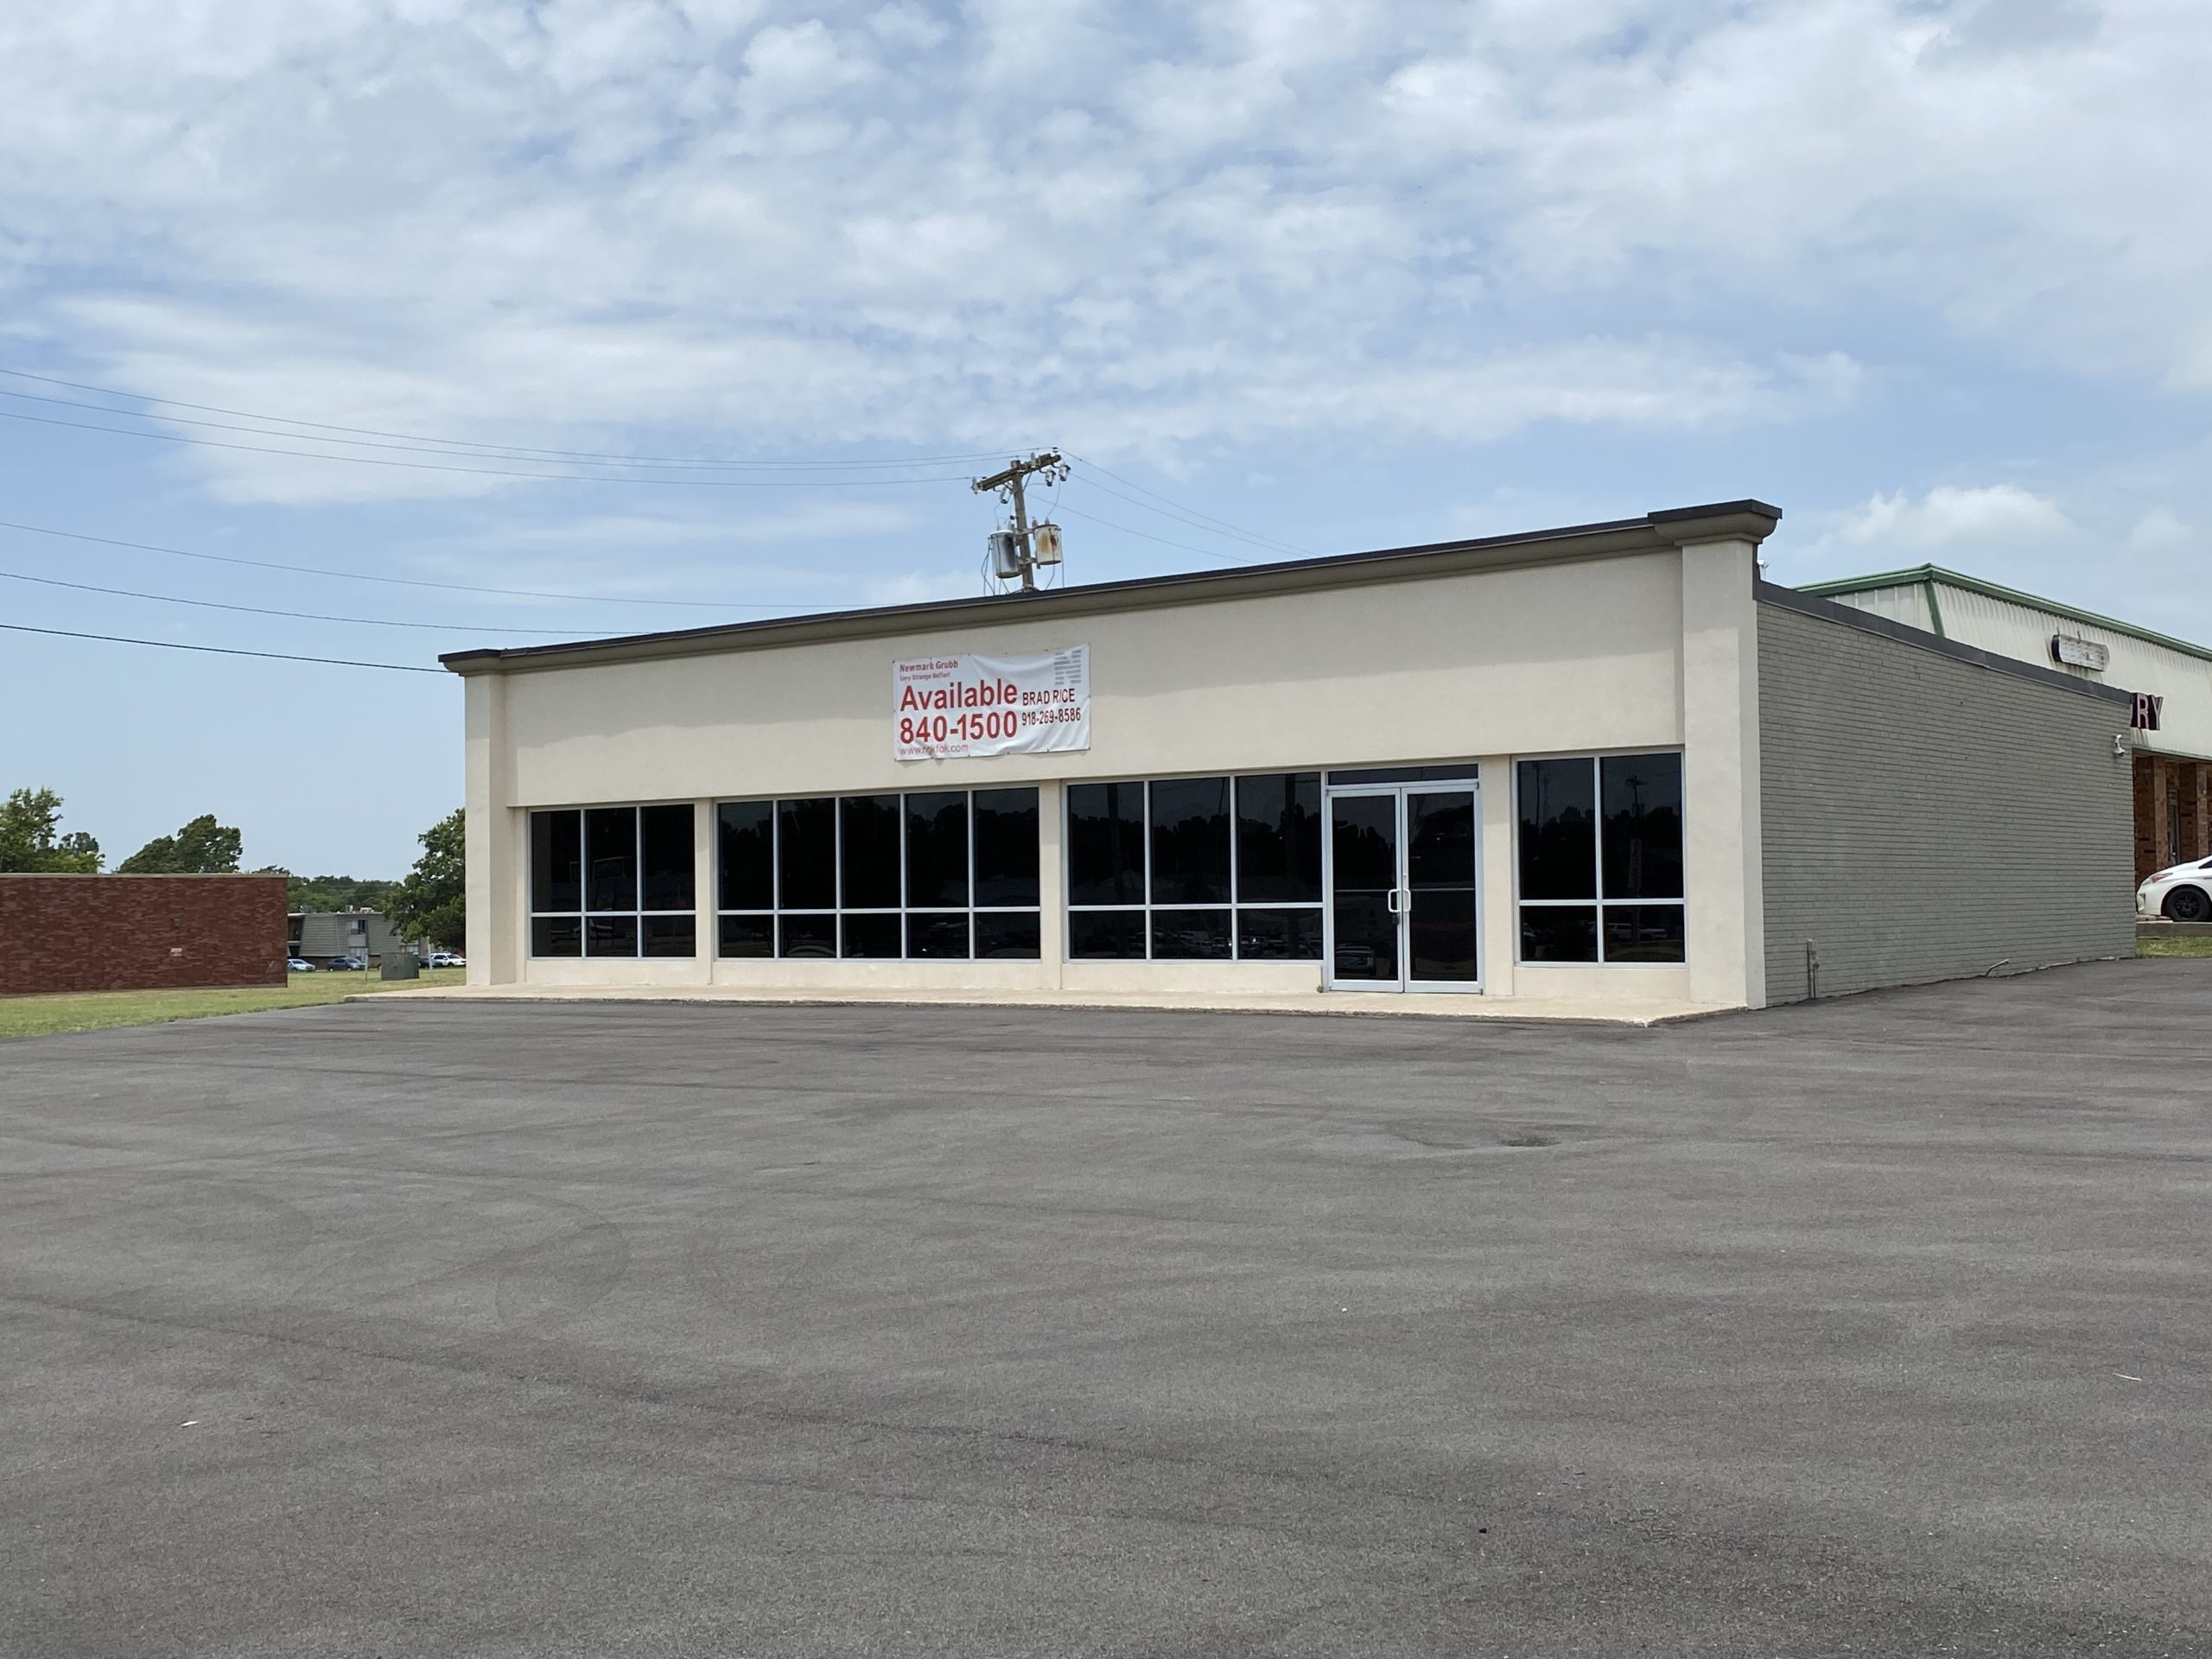 NEWLY WHITEBOXED RETAIL SPACE FOR SALE ON ROUTE 66